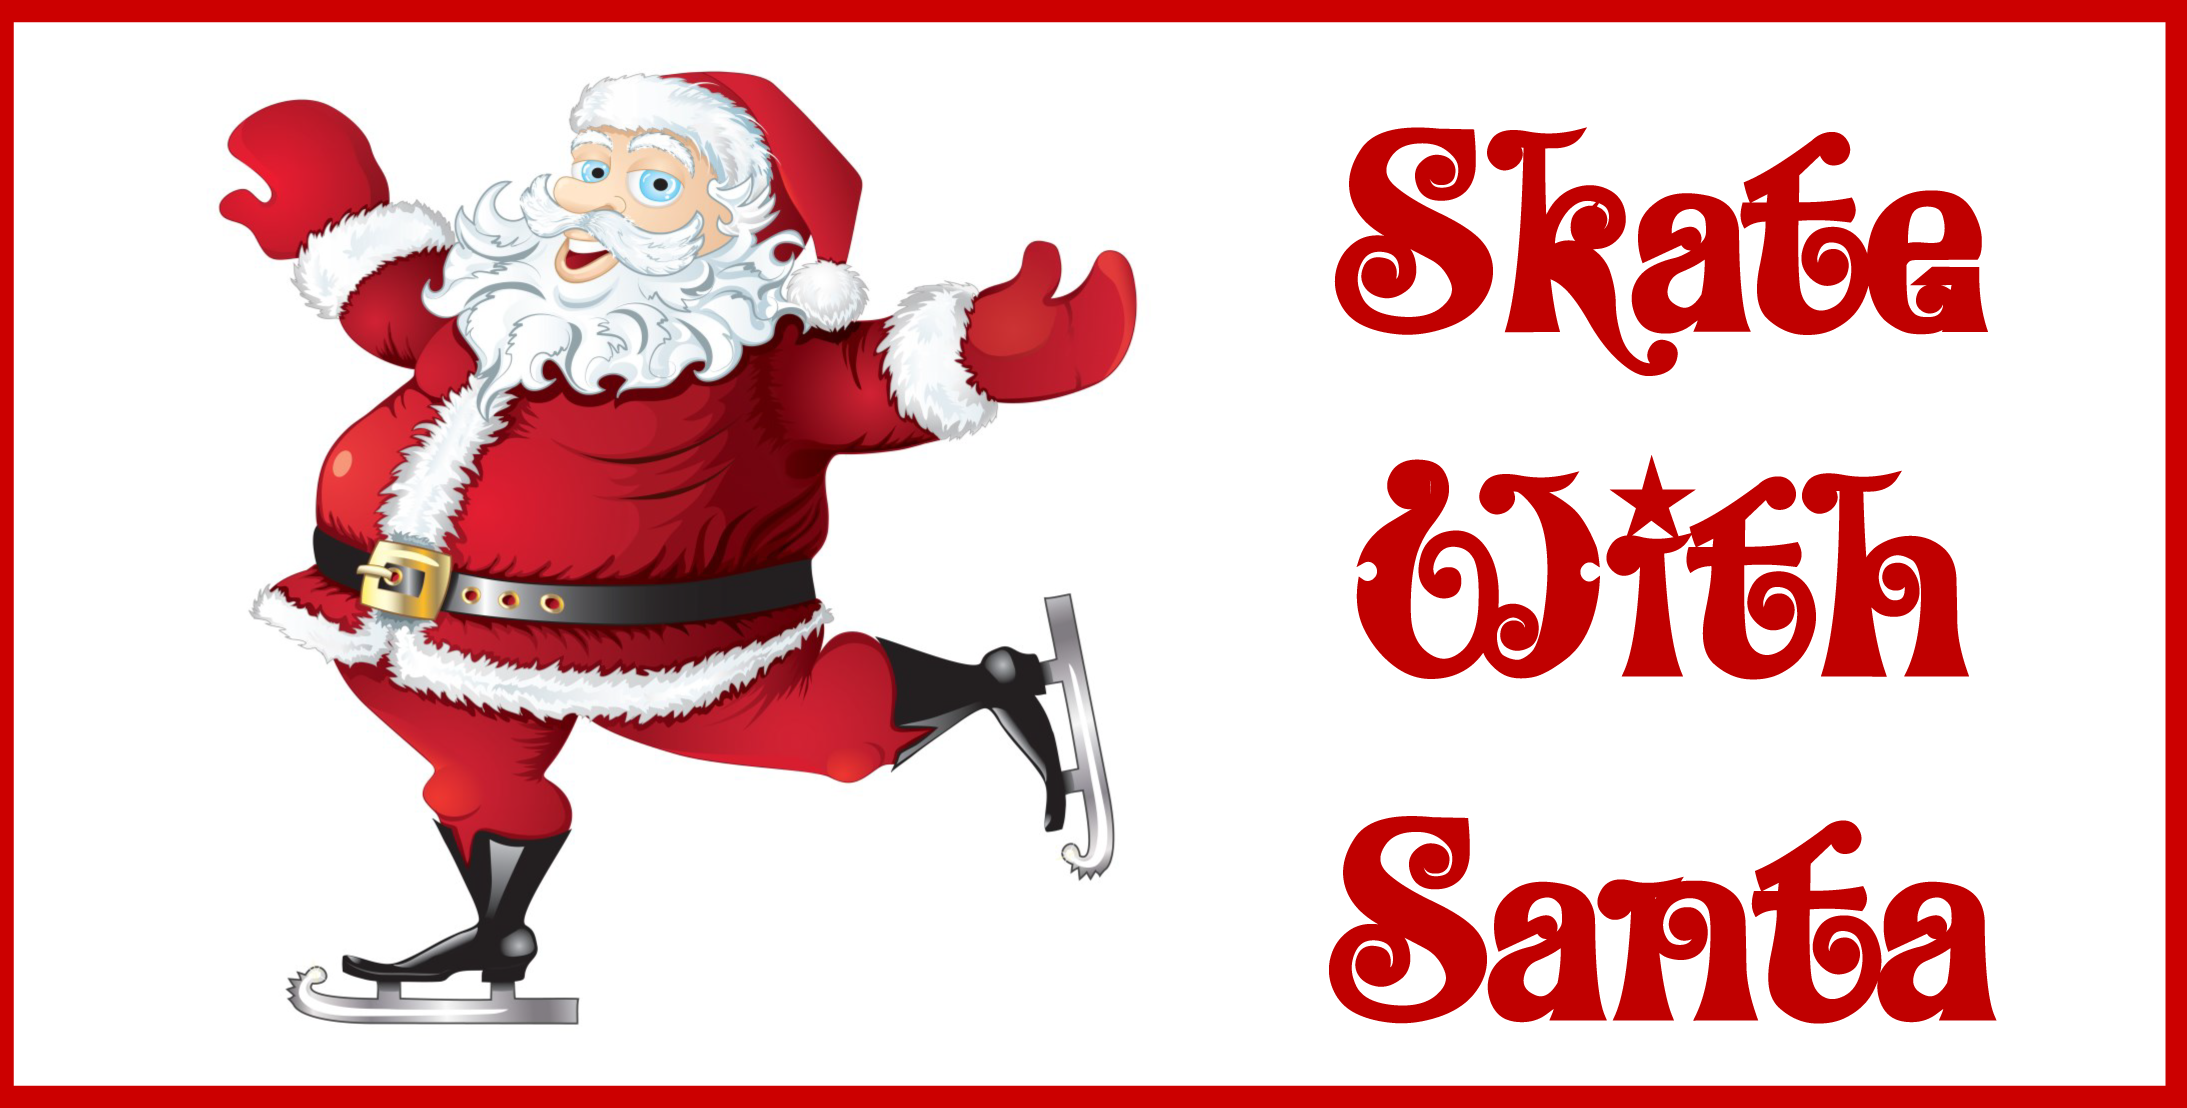 Skate-with-Santa-Poster2.png